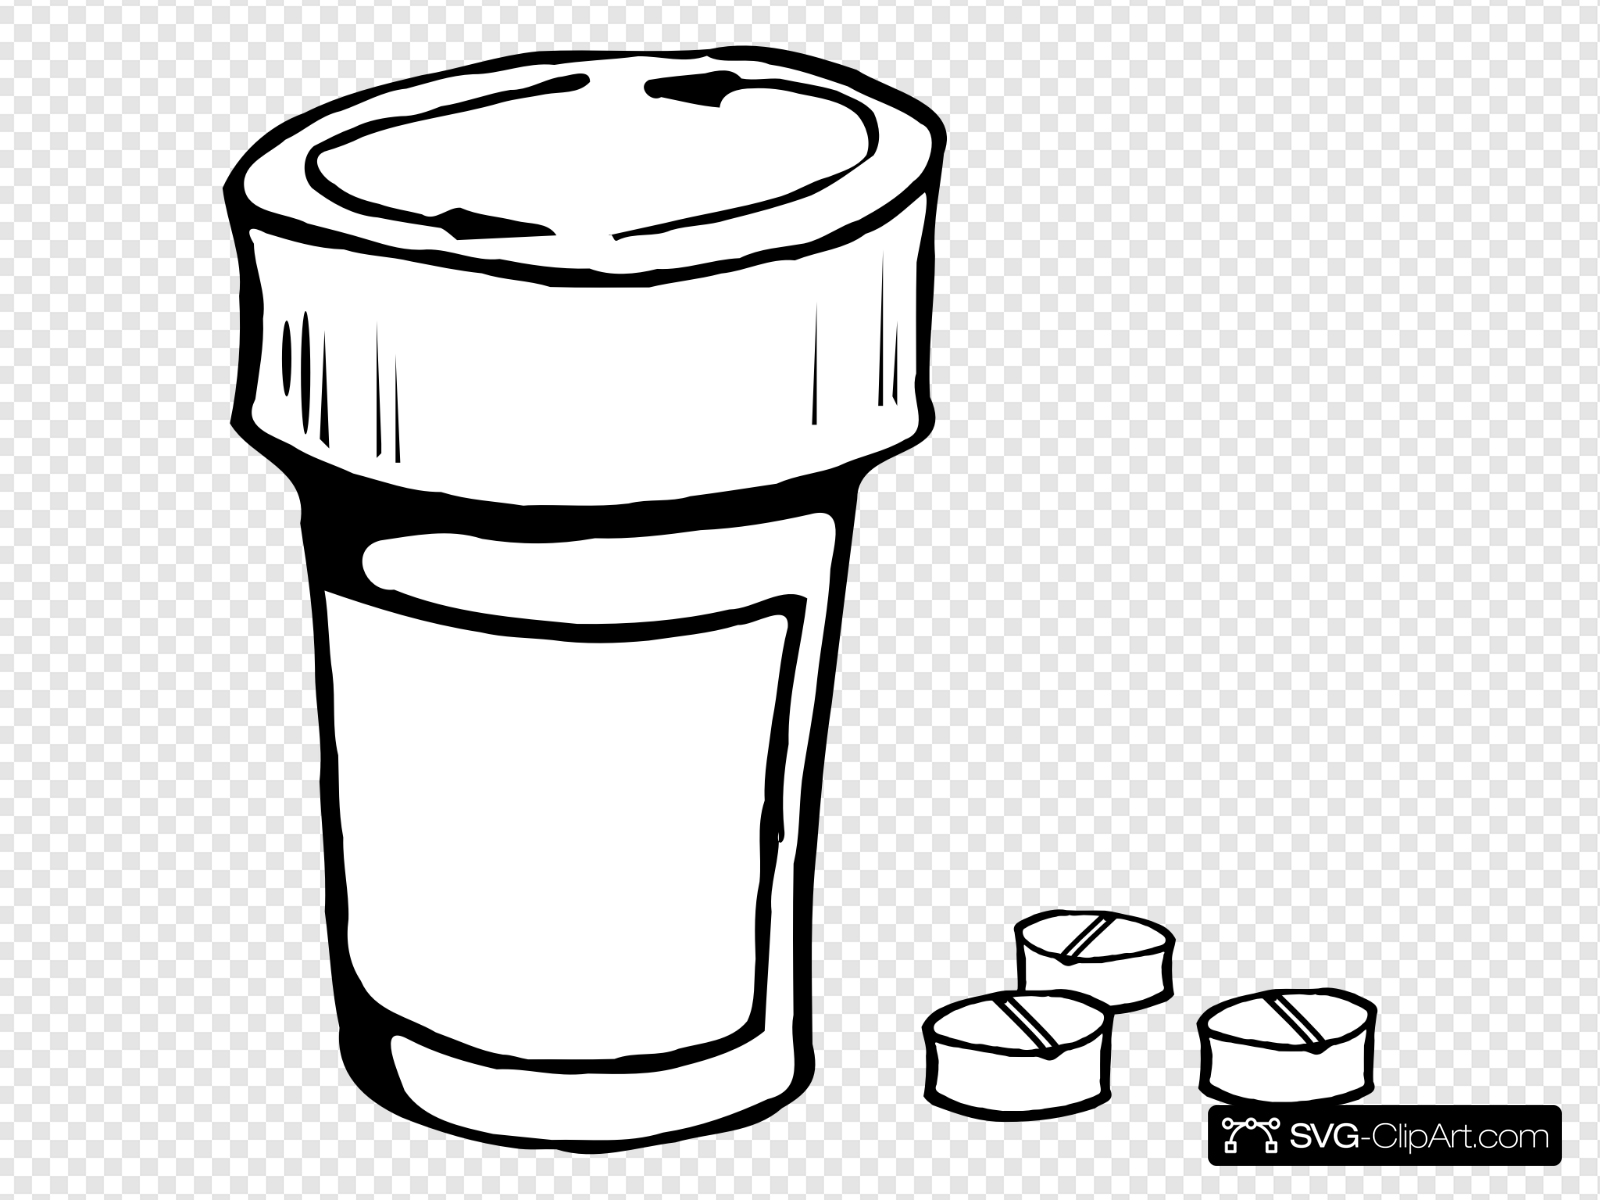 Pills And Bottle Clip art, Icon and SVG.